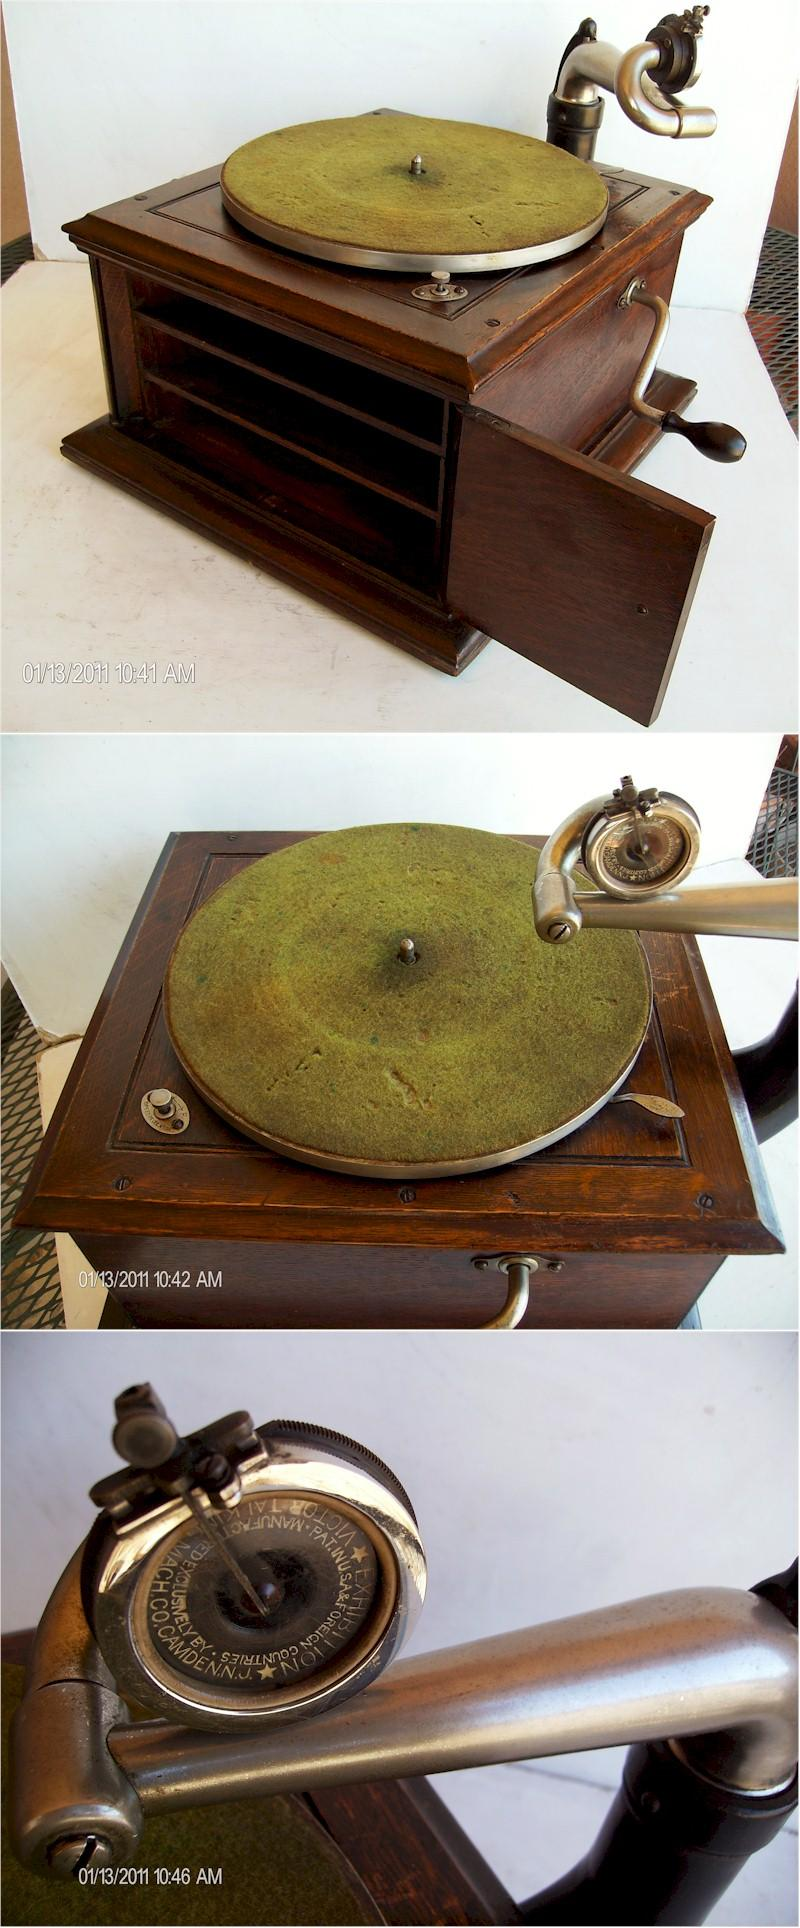 Victor VV-IV Phonograph